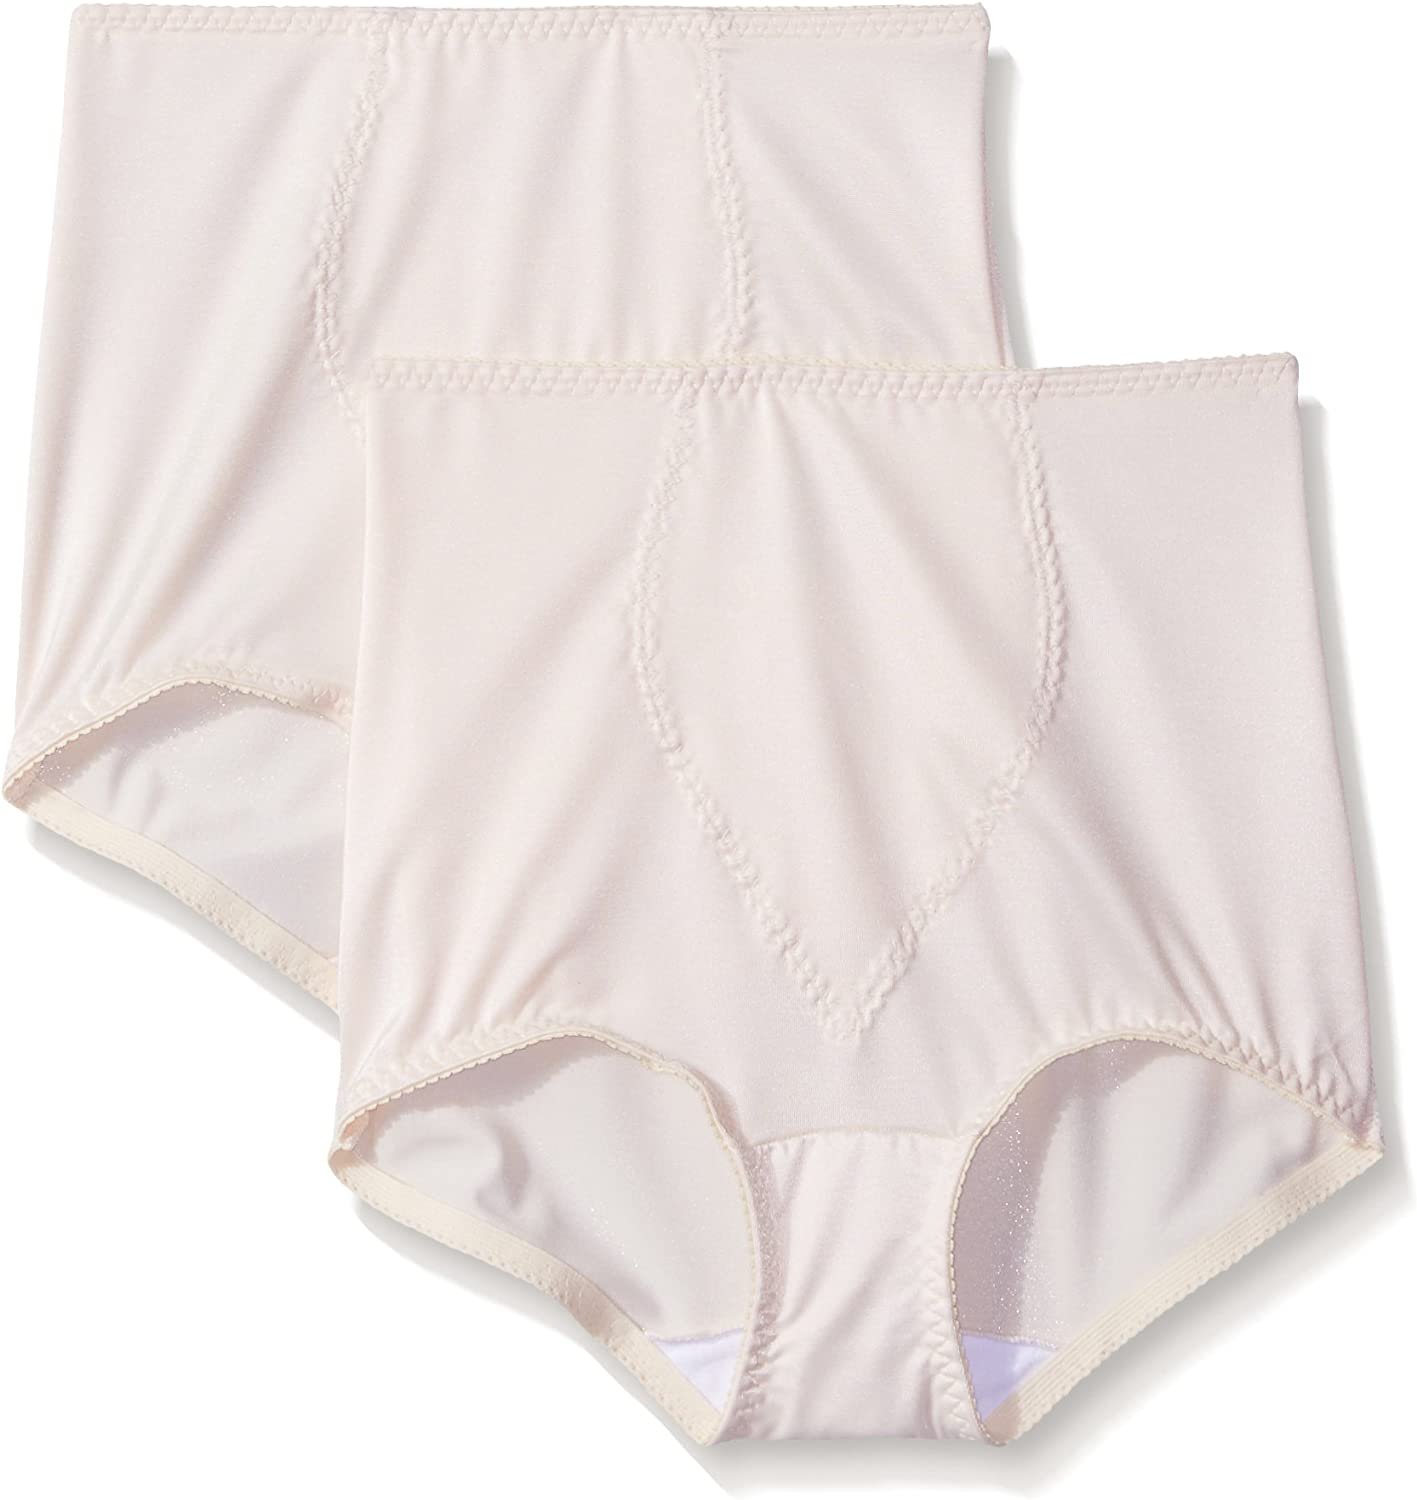 Hanes Shapewear Women's Light Control 2 Pack Tummy Control Brief at  Women's Clothing store